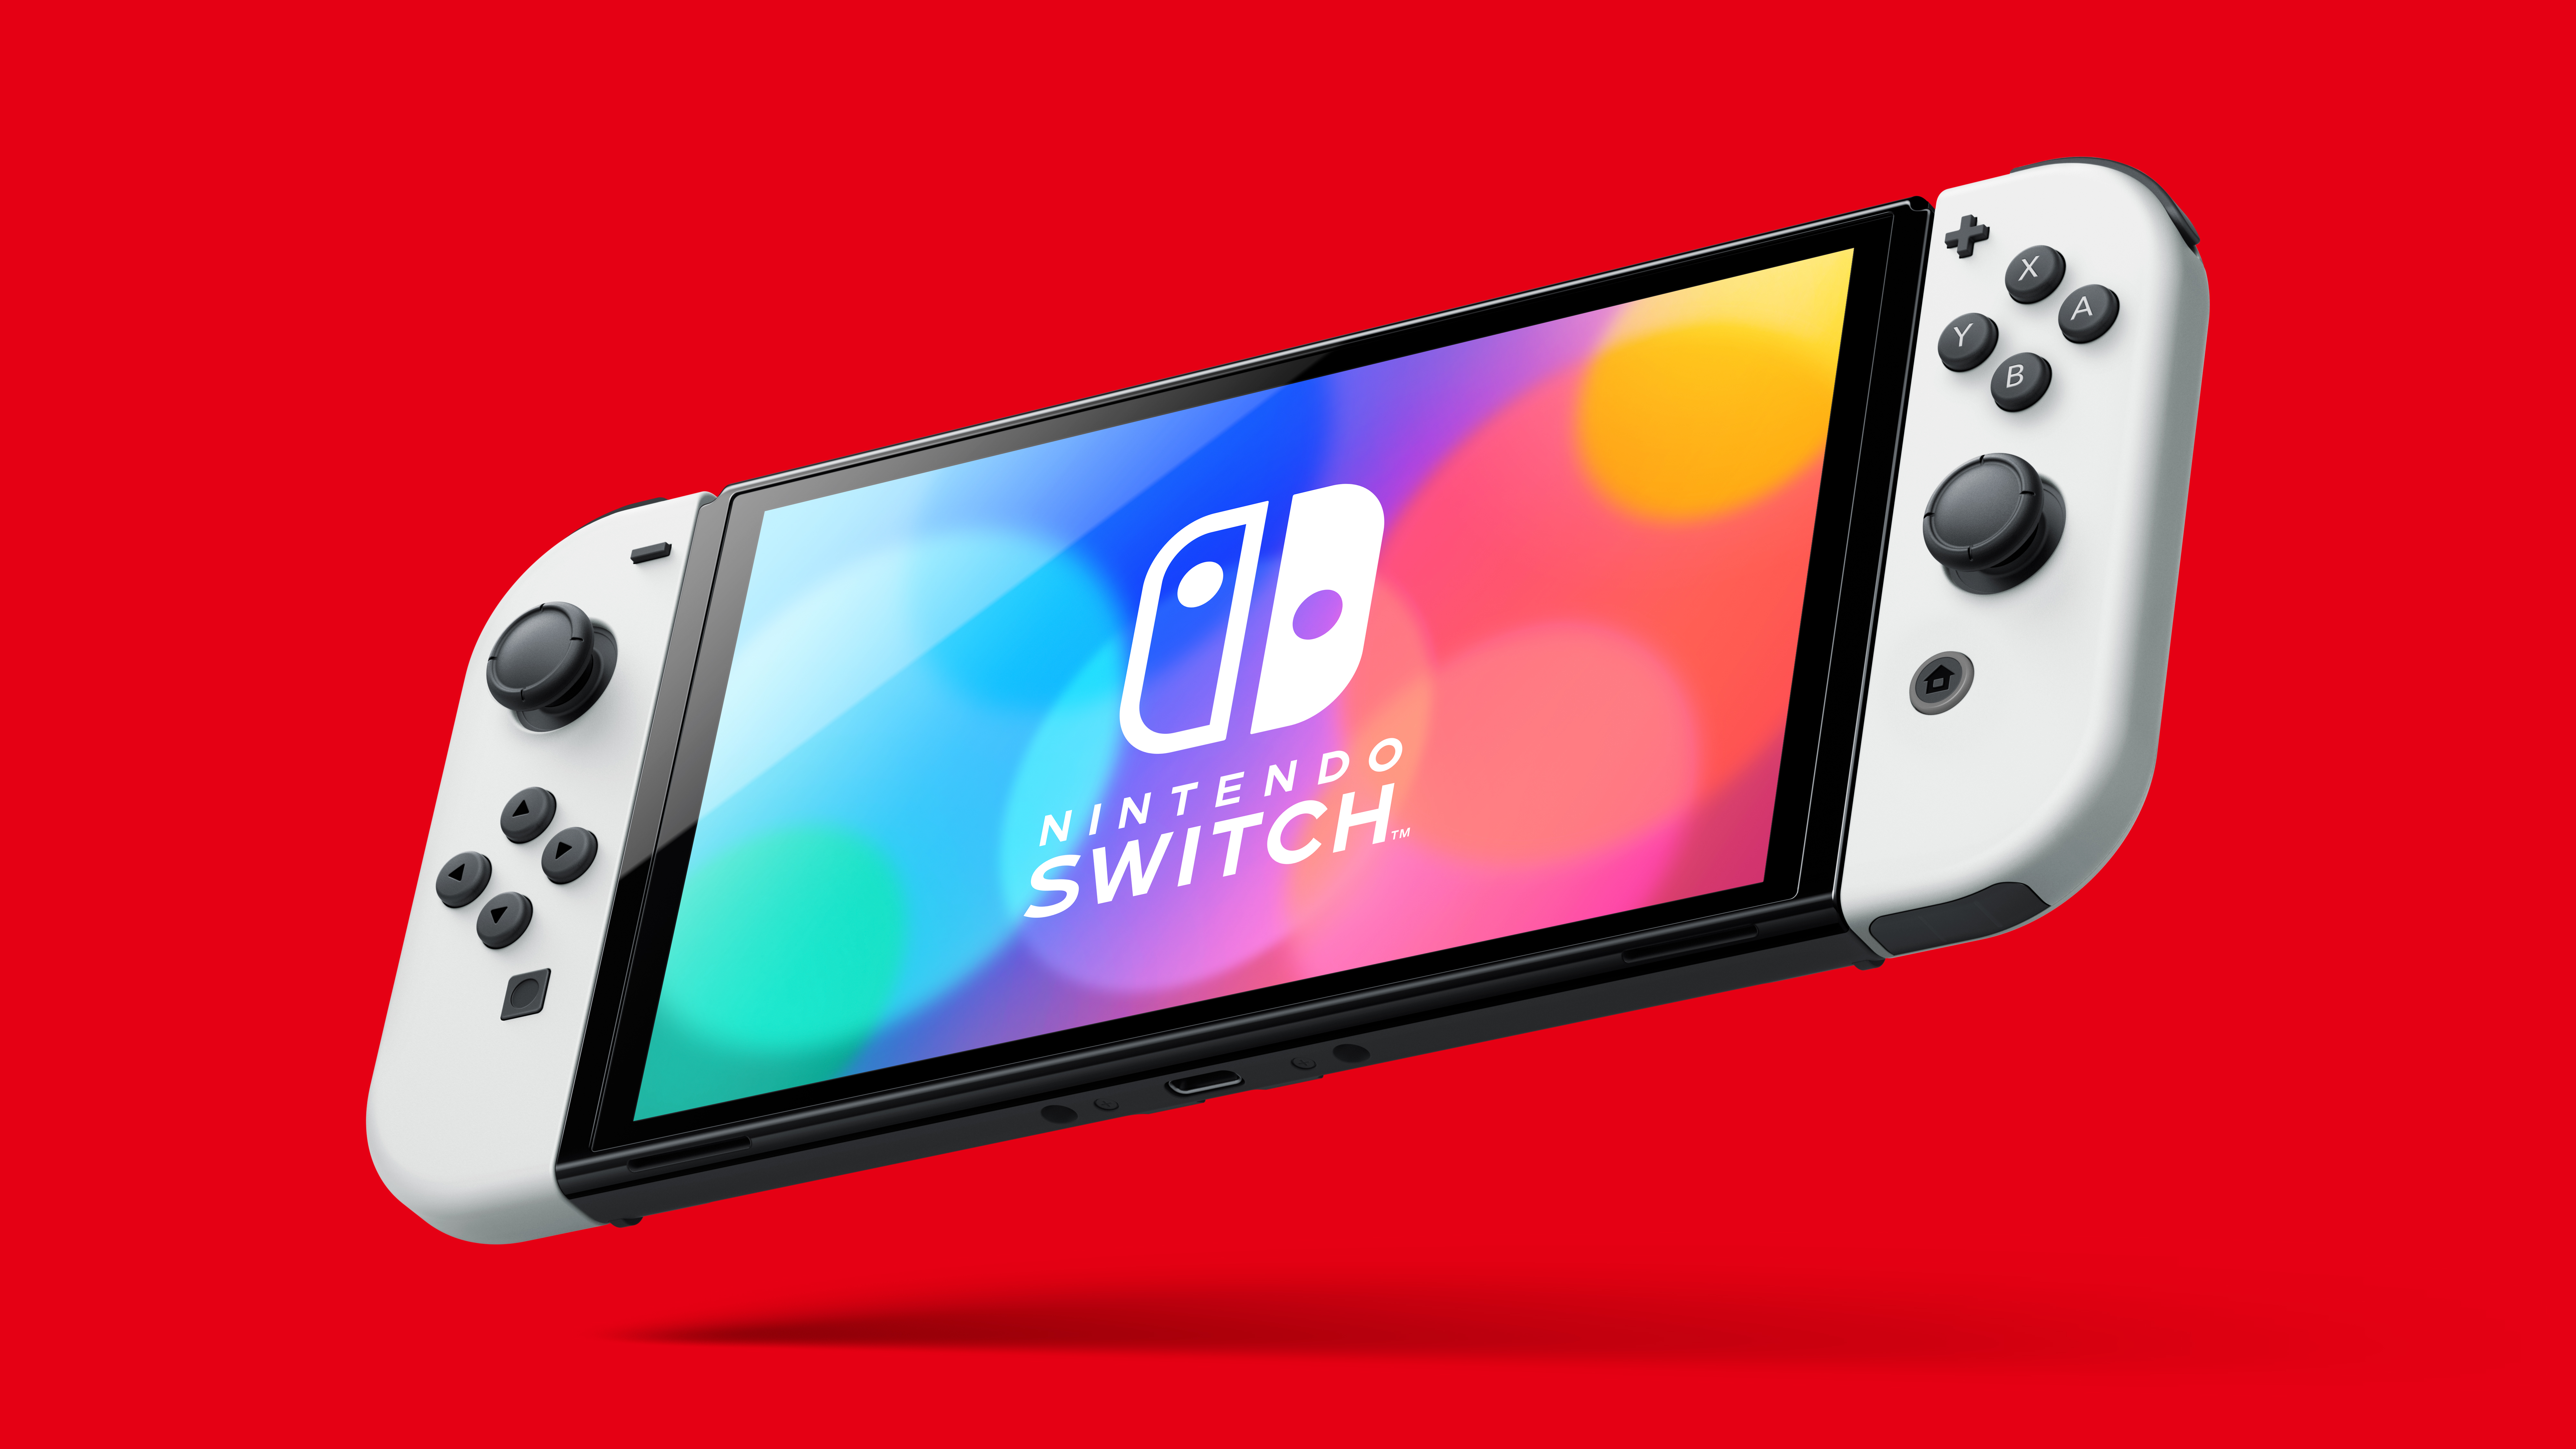 Nintendo Switch OLED Sold Out Immediately, Video Game Twitter Reacts